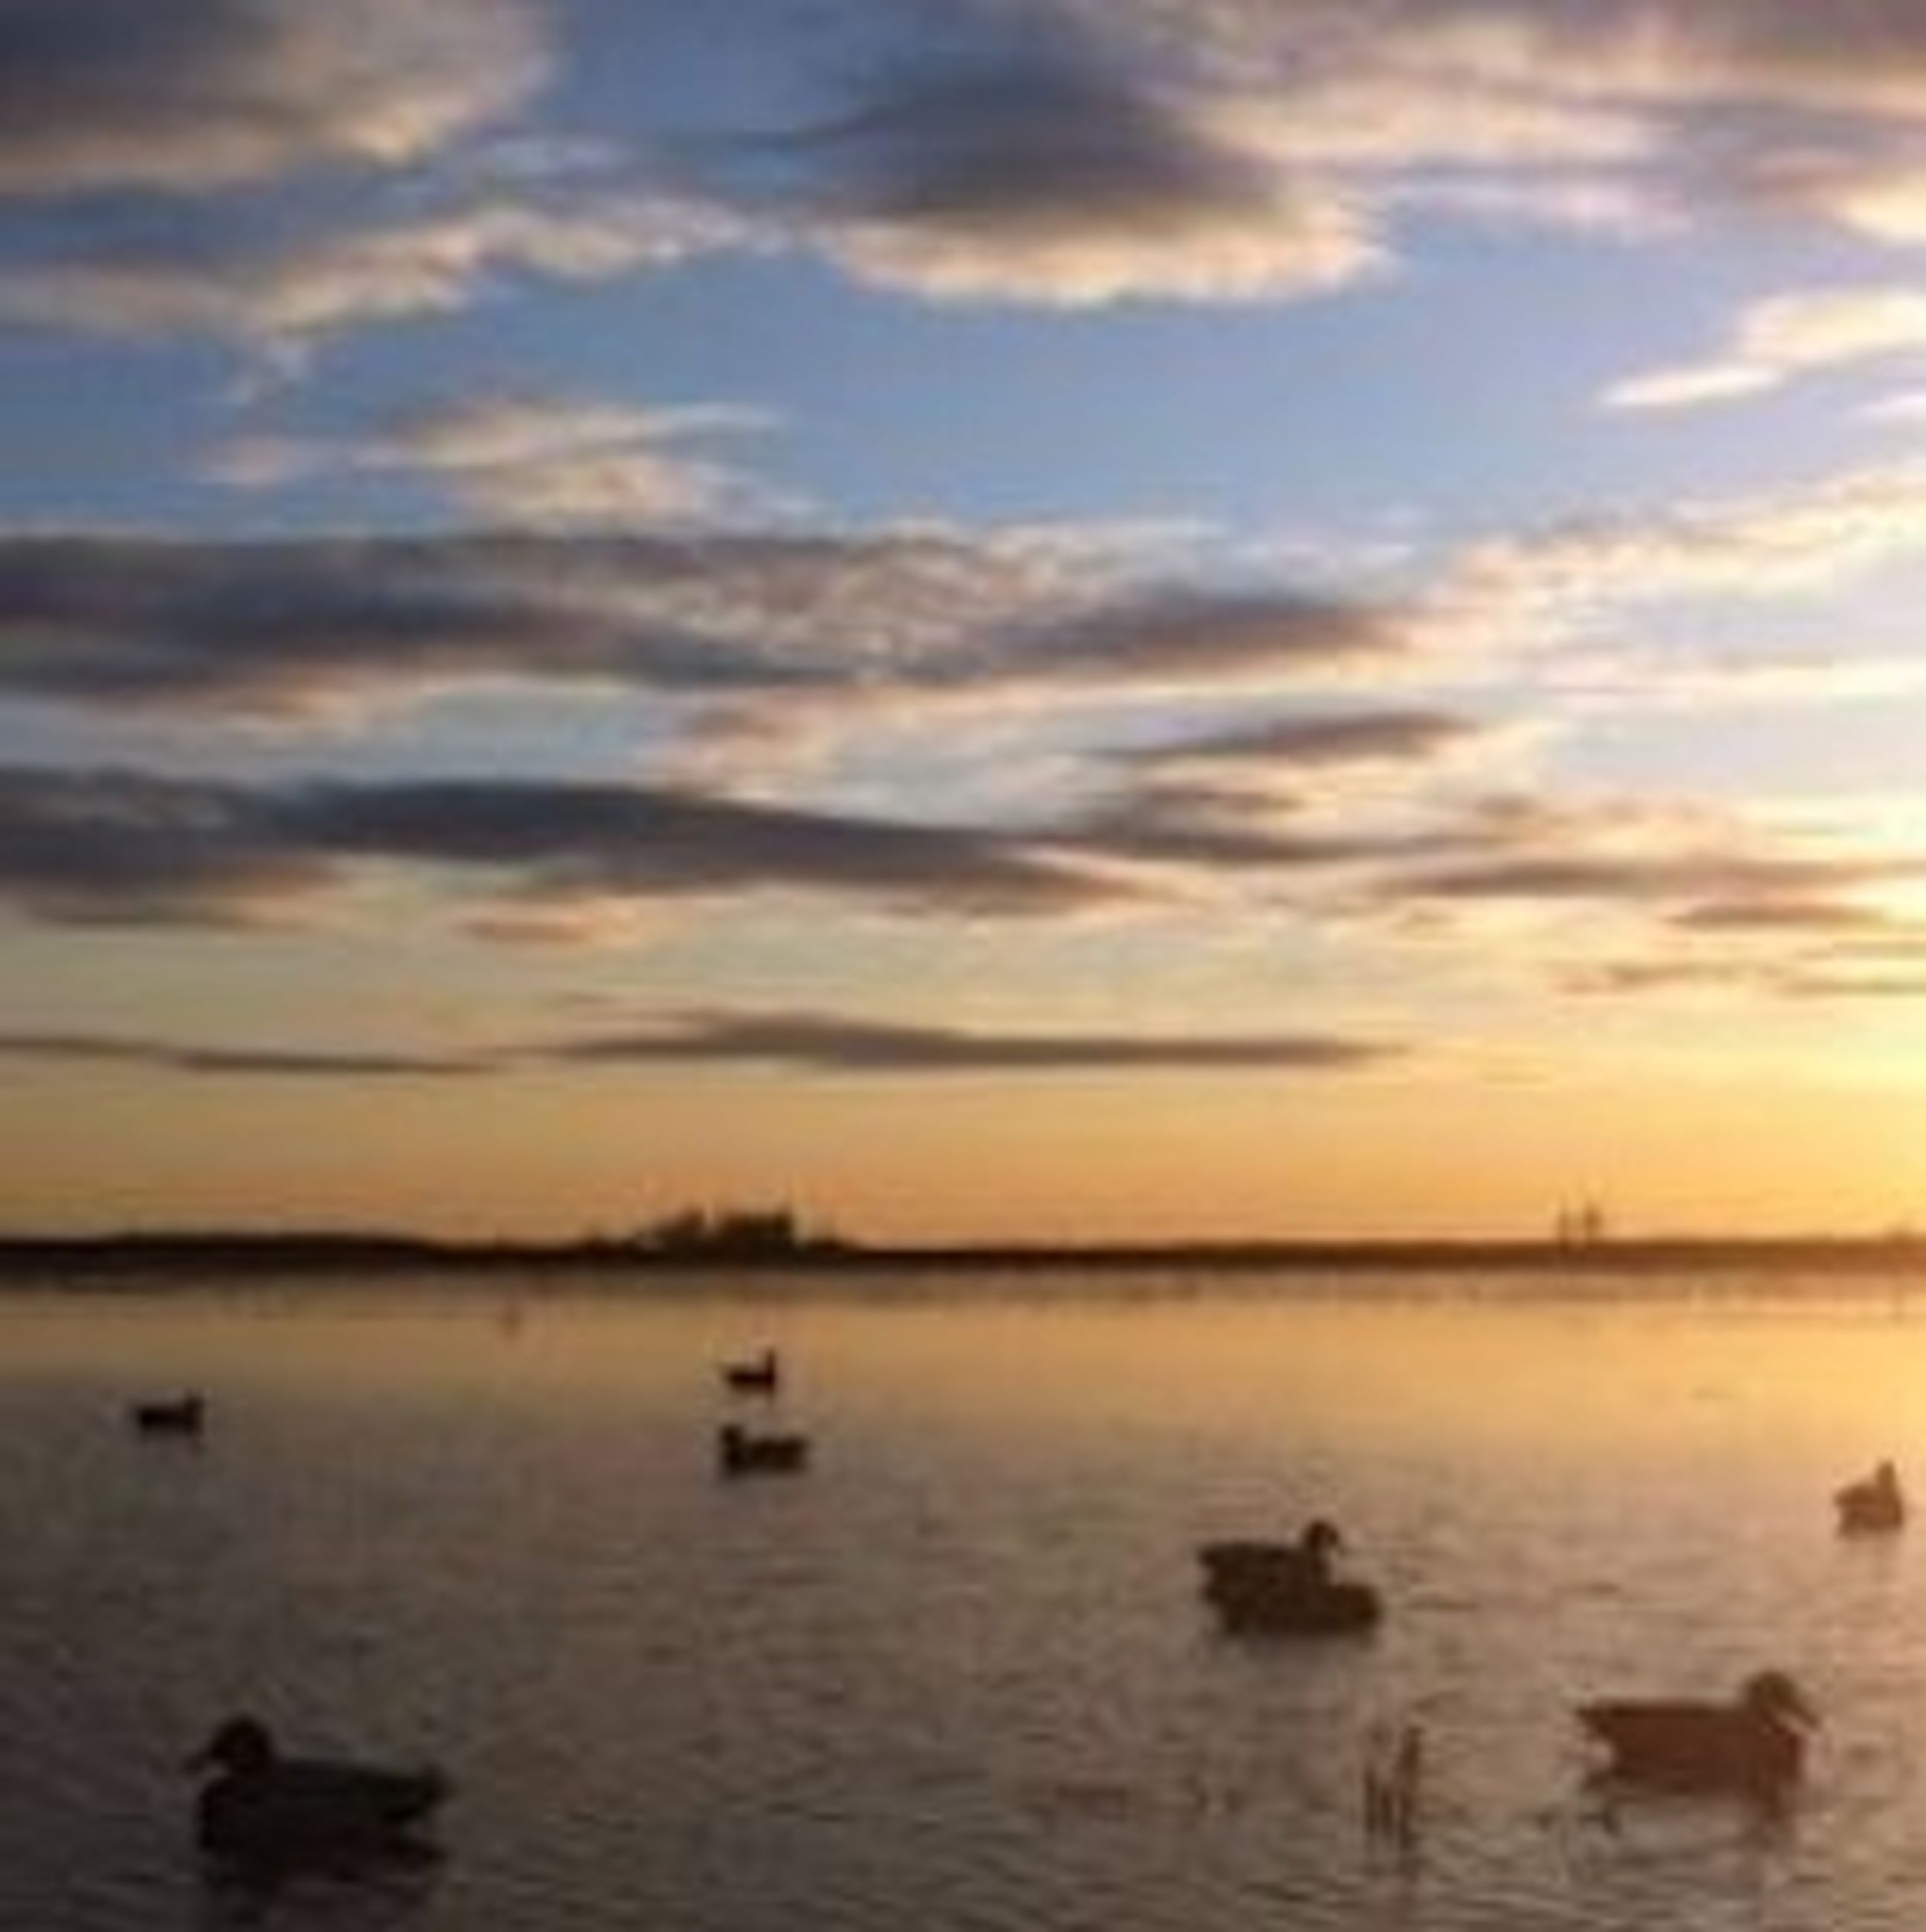 sunset, water, sky, scenics, tranquil scene, sea, tranquility, beauty in nature, cloud - sky, waterfront, nature, orange color, idyllic, cloud, cloudy, reflection, lake, silhouette, horizon over water, rippled